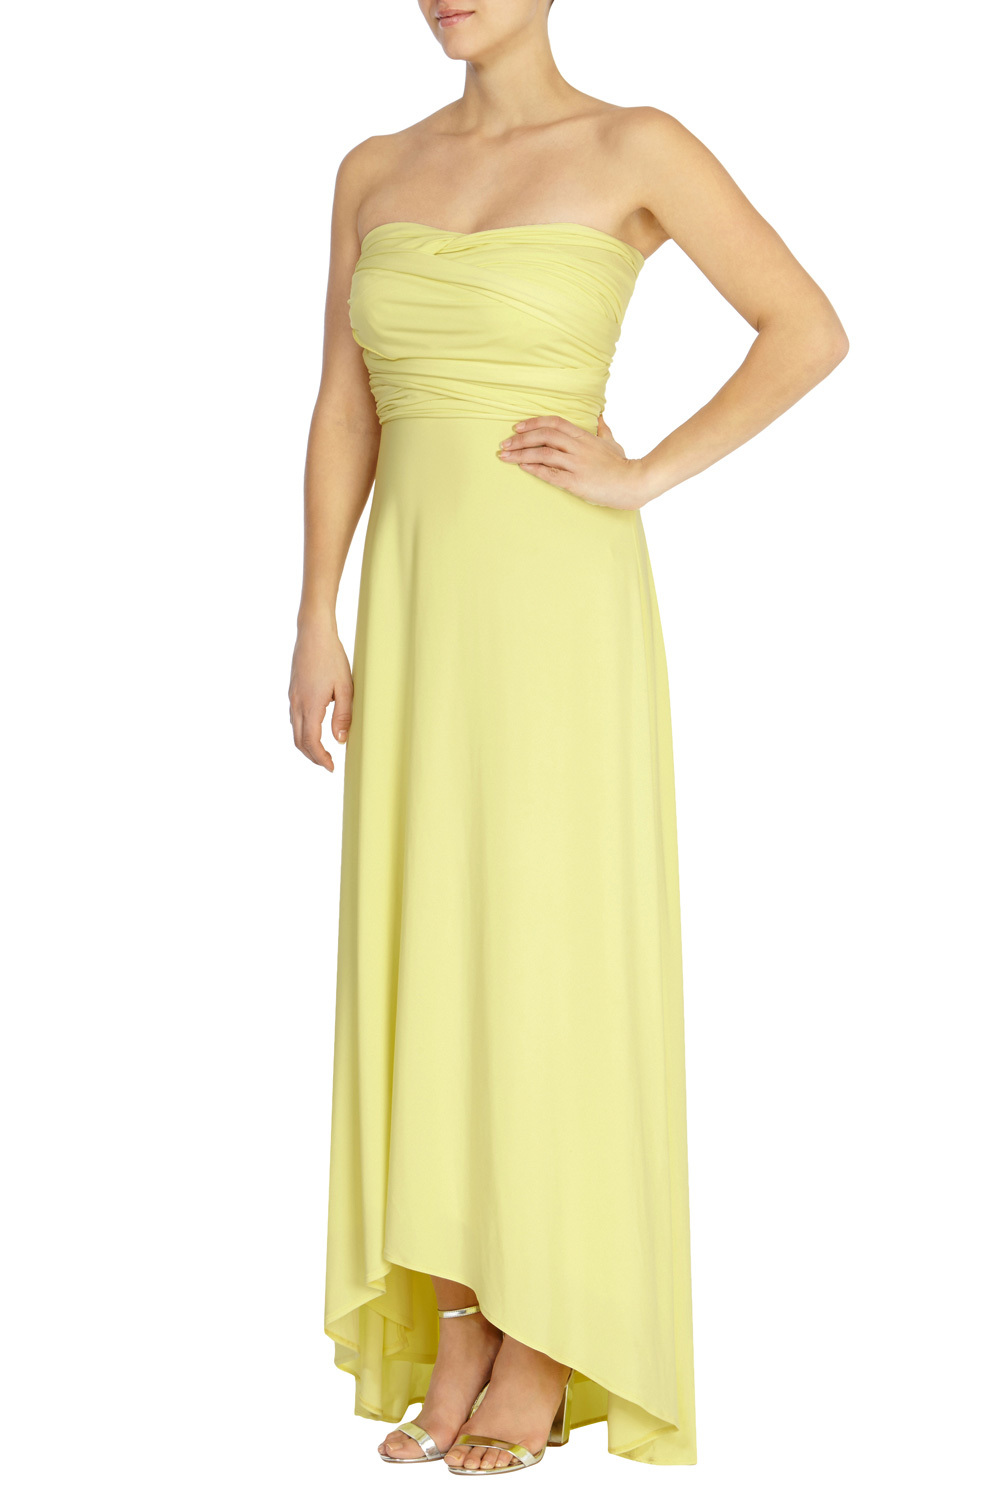 Corwin Hi Low Maxi Dress - neckline: strapless (straight/sweetheart); pattern: plain; style: maxi dress; sleeve style: strapless; bust detail: subtle bust detail; predominant colour: primrose yellow; occasions: evening; length: floor length; fit: body skimming; fibres: polyester/polyamide - 100%; sleeve length: sleeveless; pattern type: fabric; texture group: jersey - stretchy/drapey; season: s/s 2016; wardrobe: event